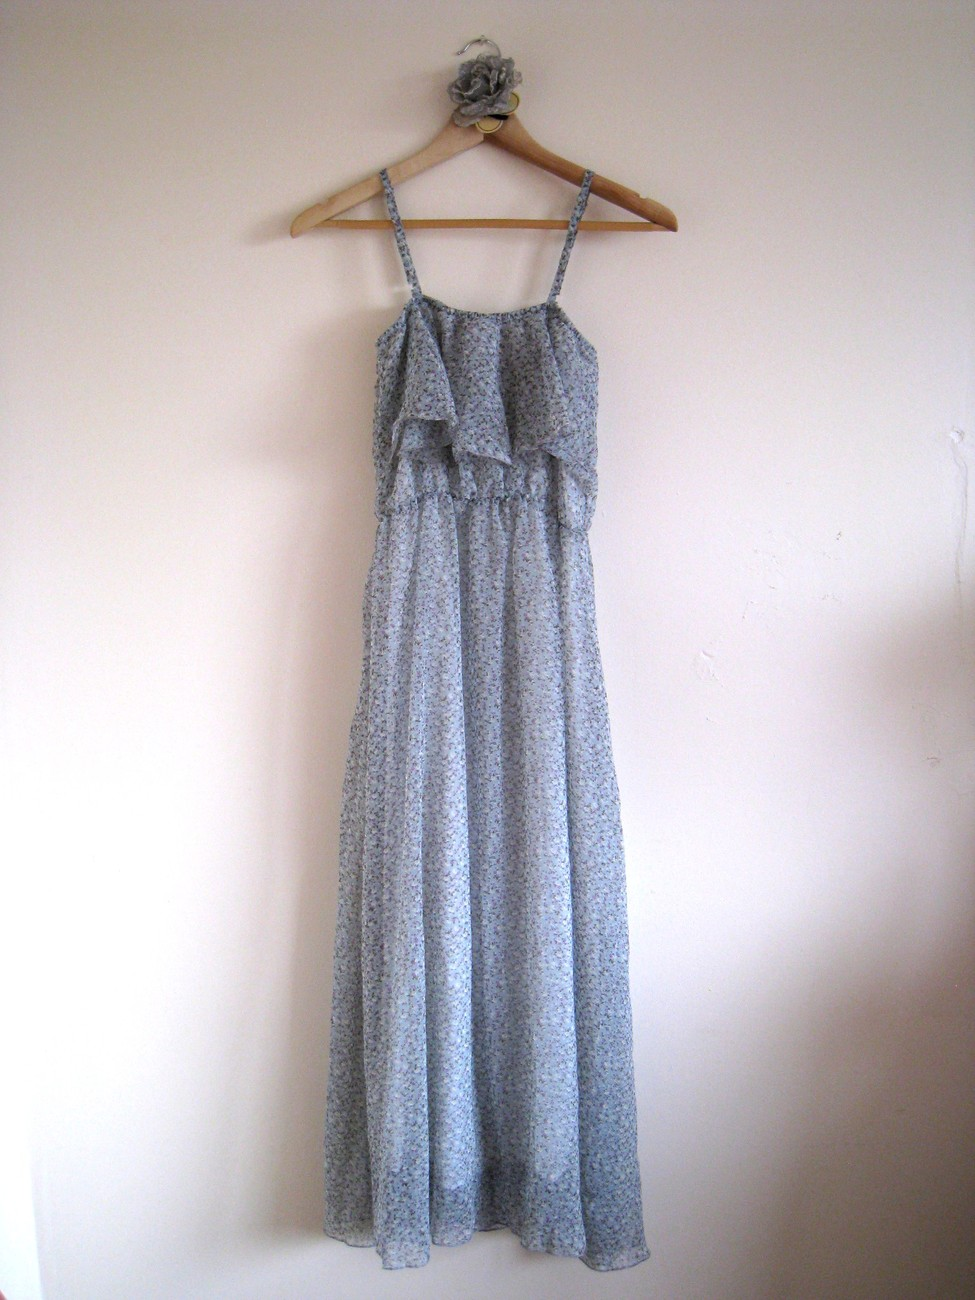 *SOLD* Sweet Frilly Floral Printed Blue Spaghetti Straps Chiffon Maxi Dress